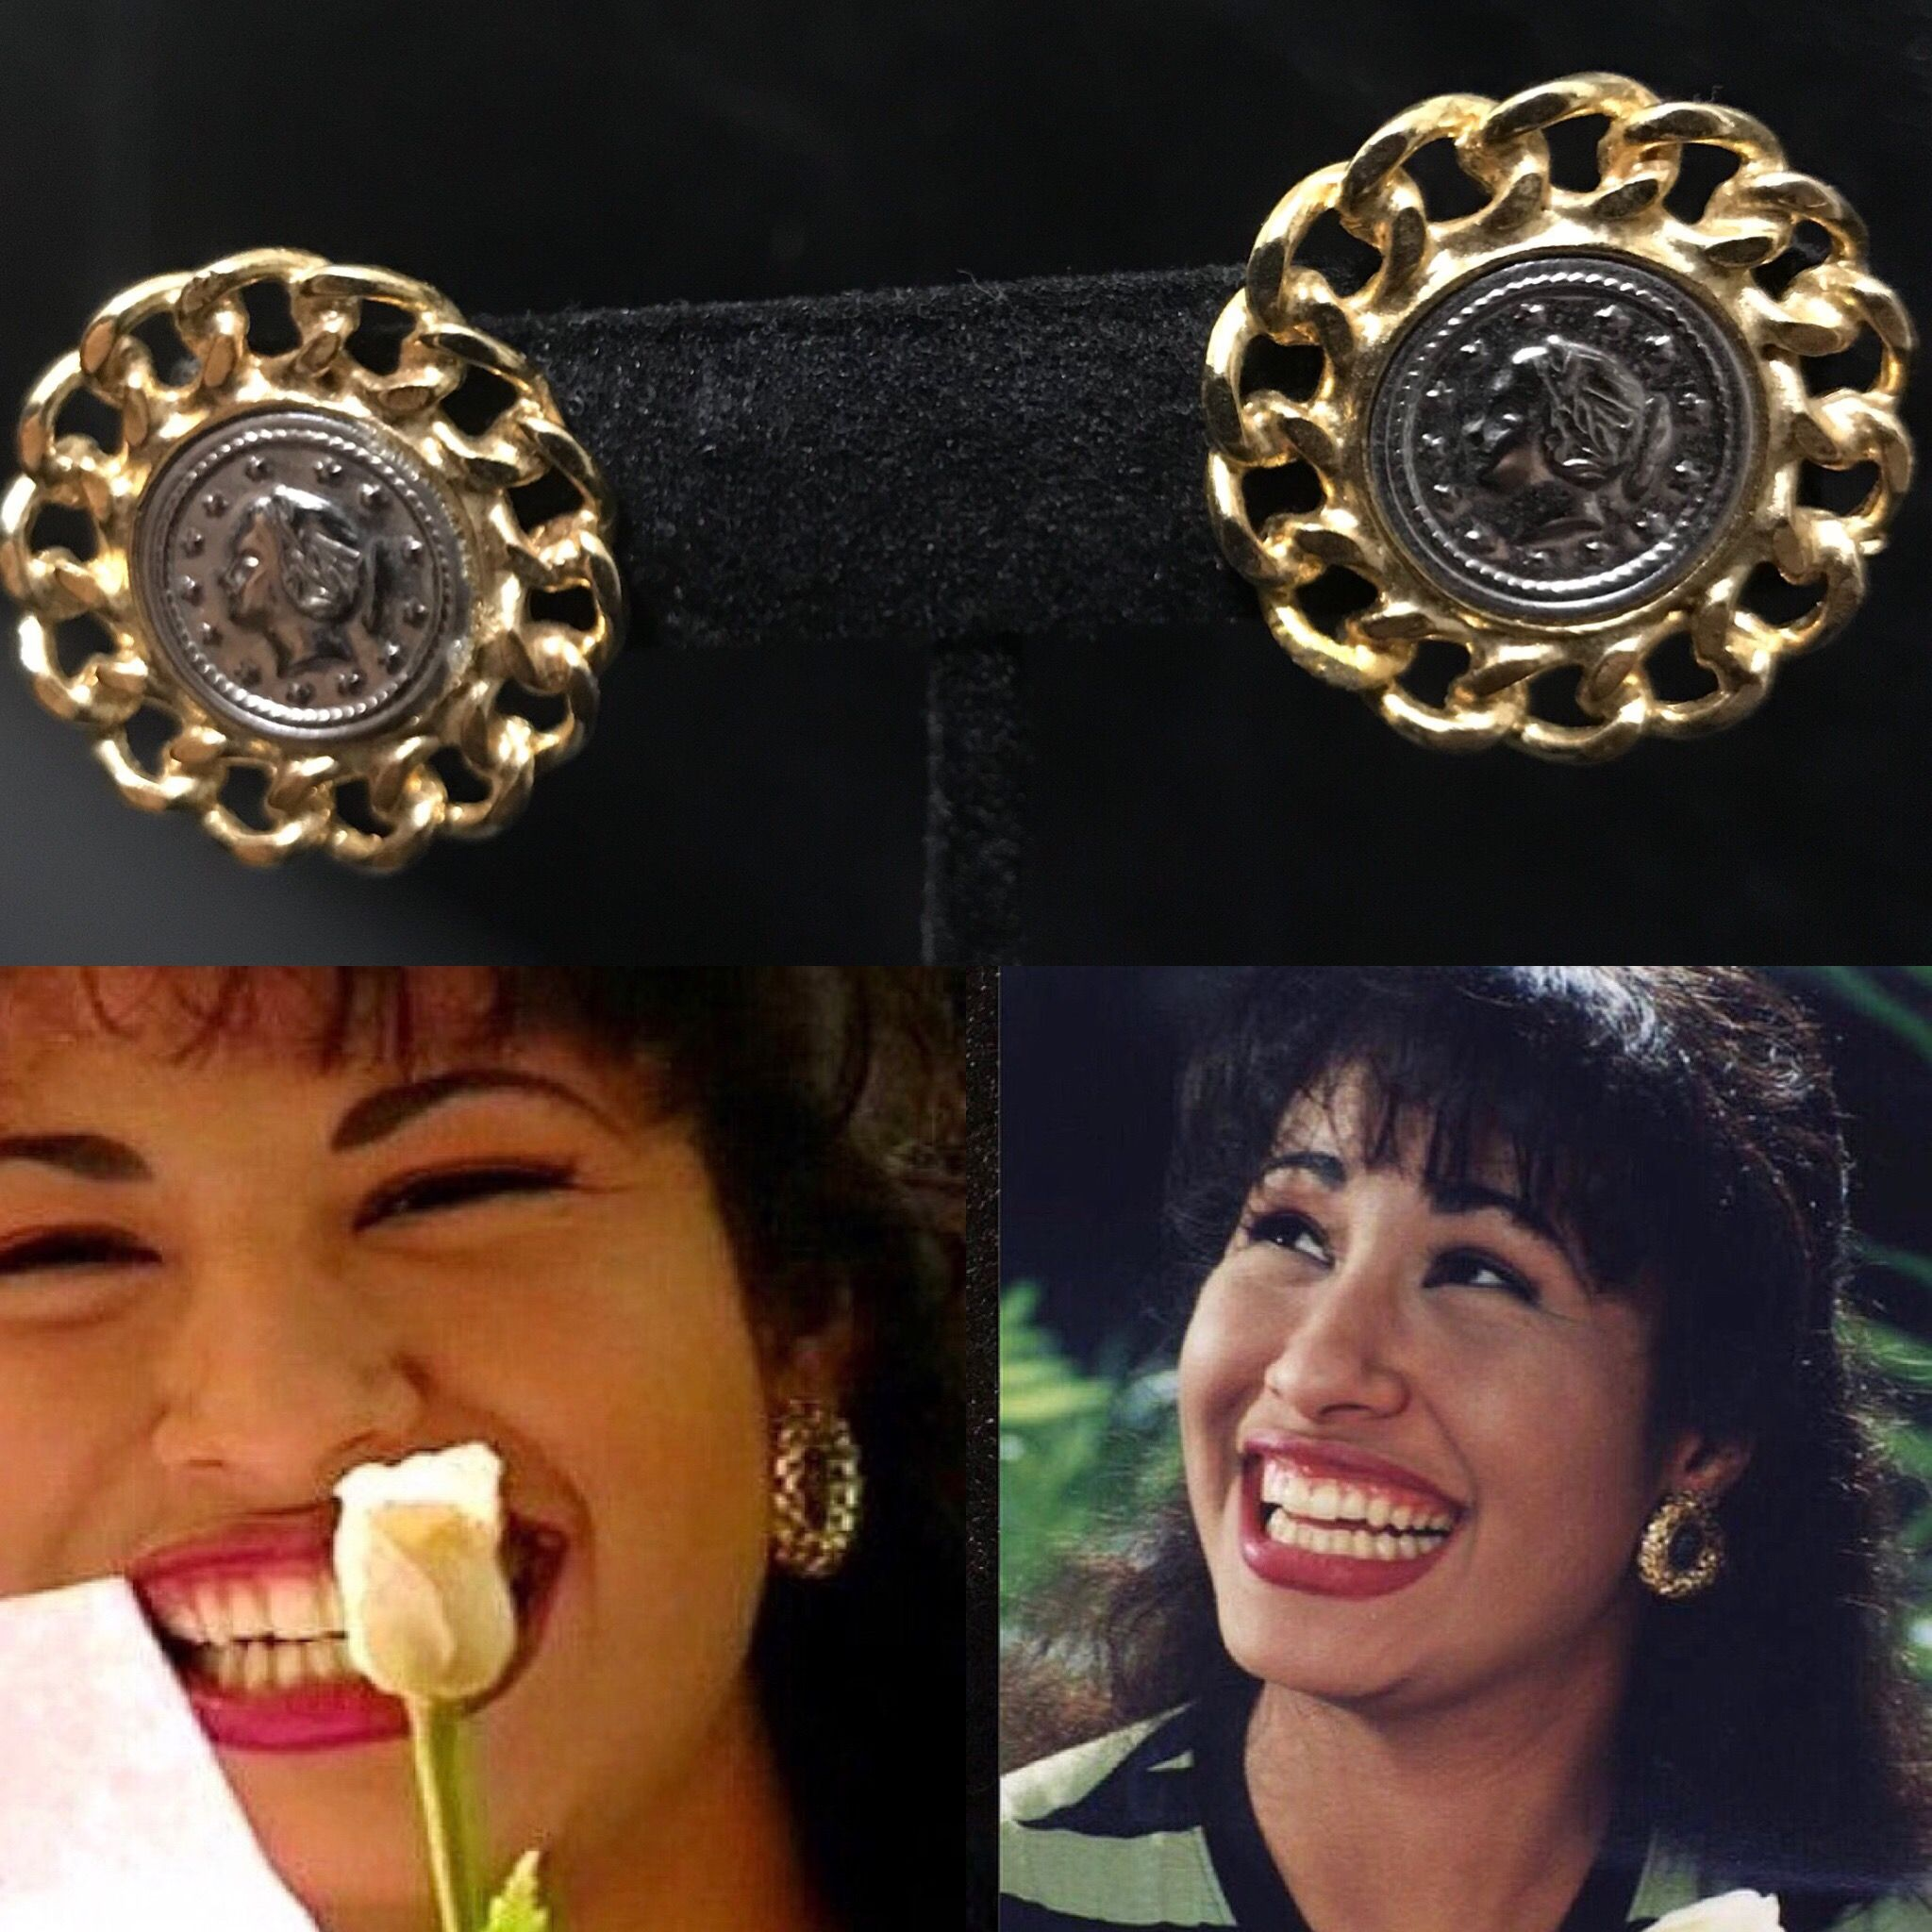 0978577f602 Selena Quintanilla inspired jewelry Coin earrings with gold chain trim